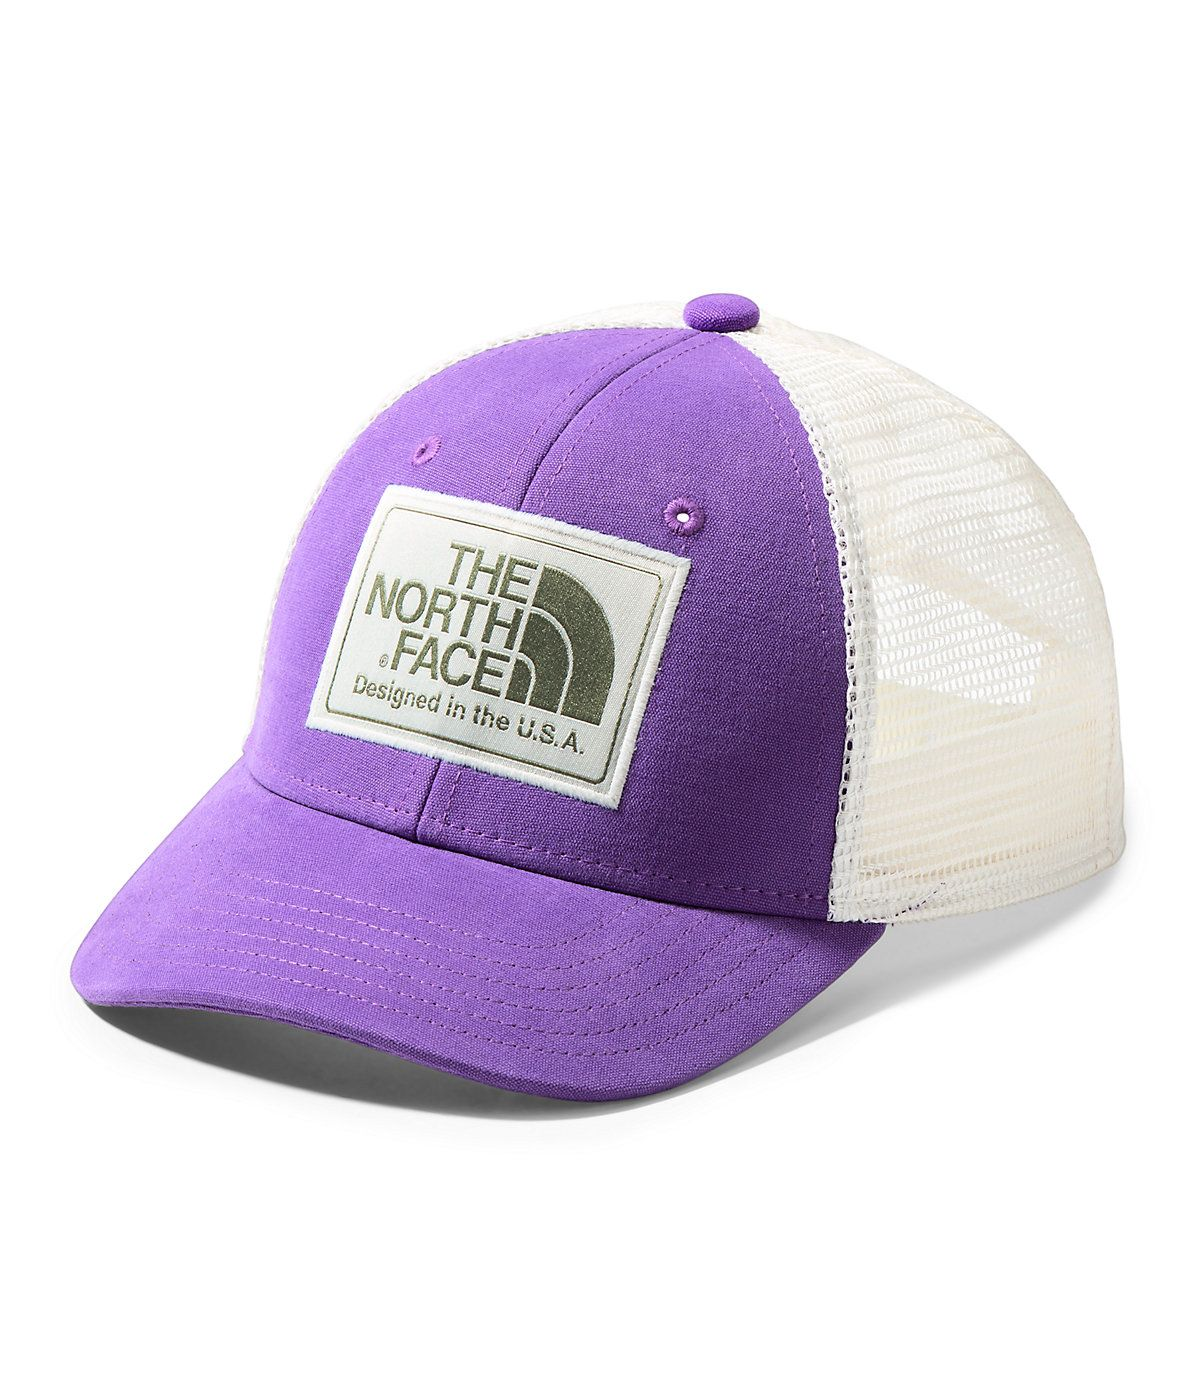 23954ed1f3165 The North Face Kids' Mudder Trucker Hat in 2019 | Products | Hats ...